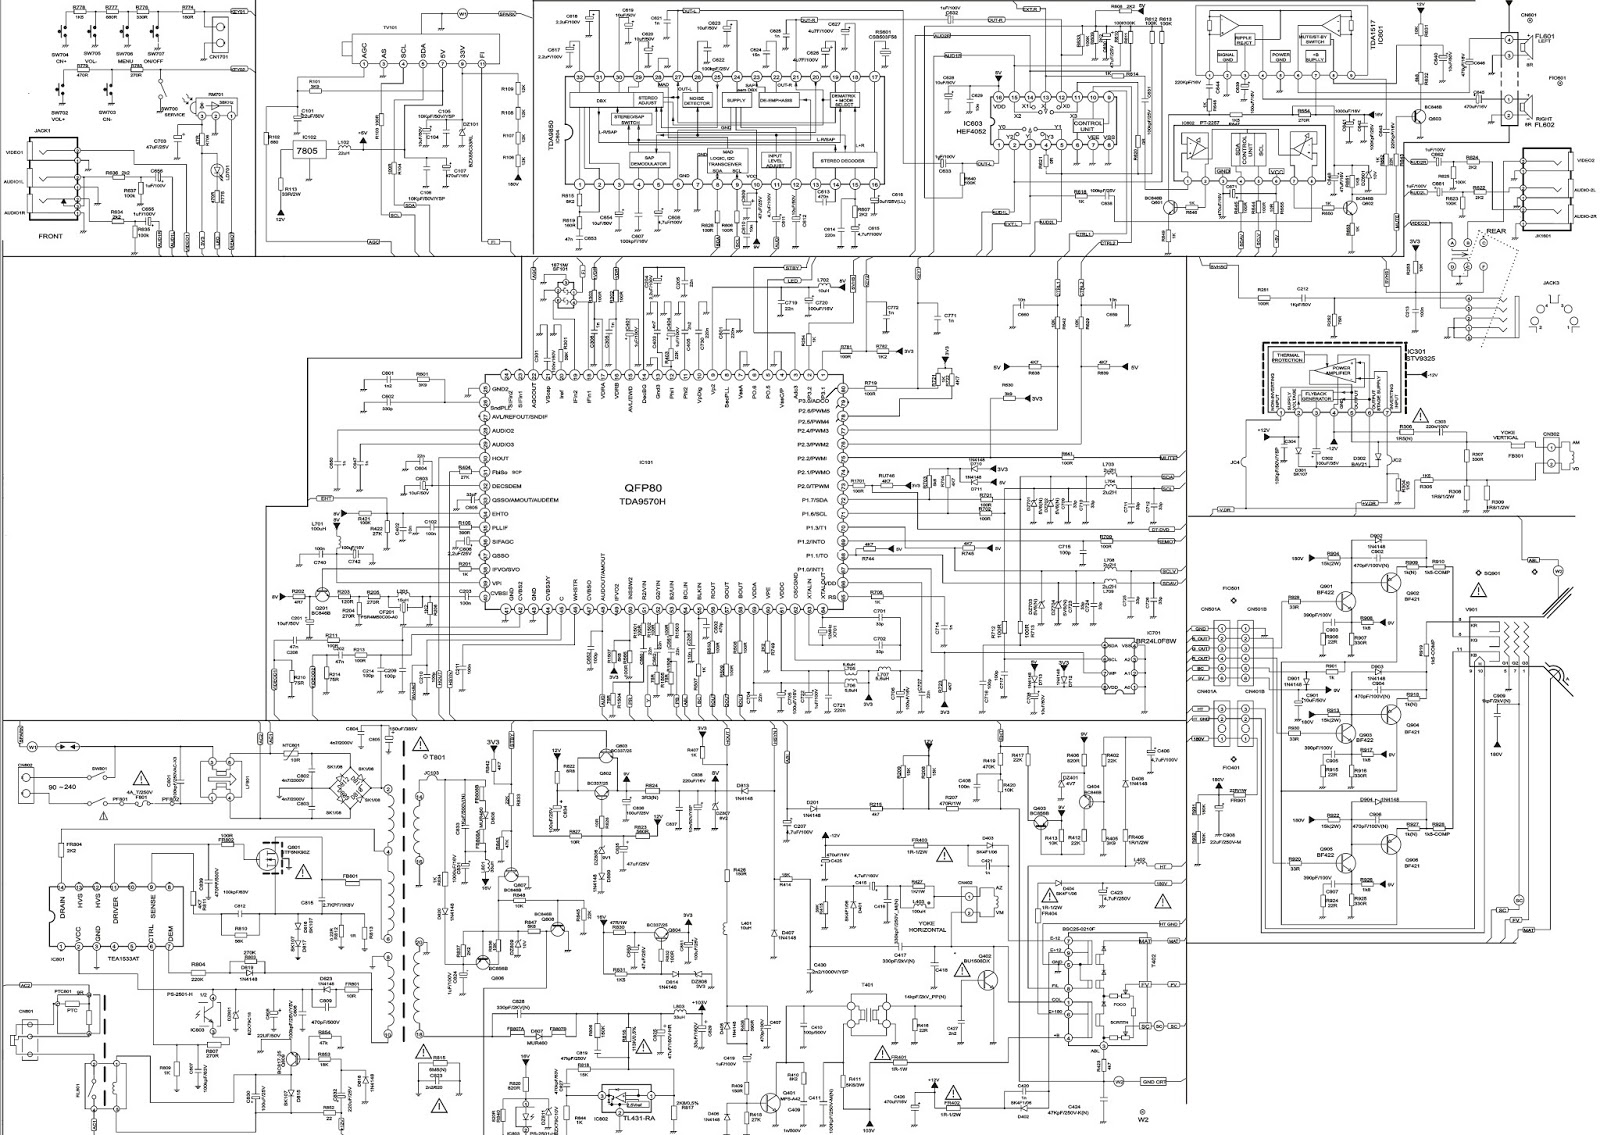 crt tv schematic diagram wiring diagram datcrt schematic diagram wiring diagram dat china crt tv schematic [ 1600 x 1135 Pixel ]